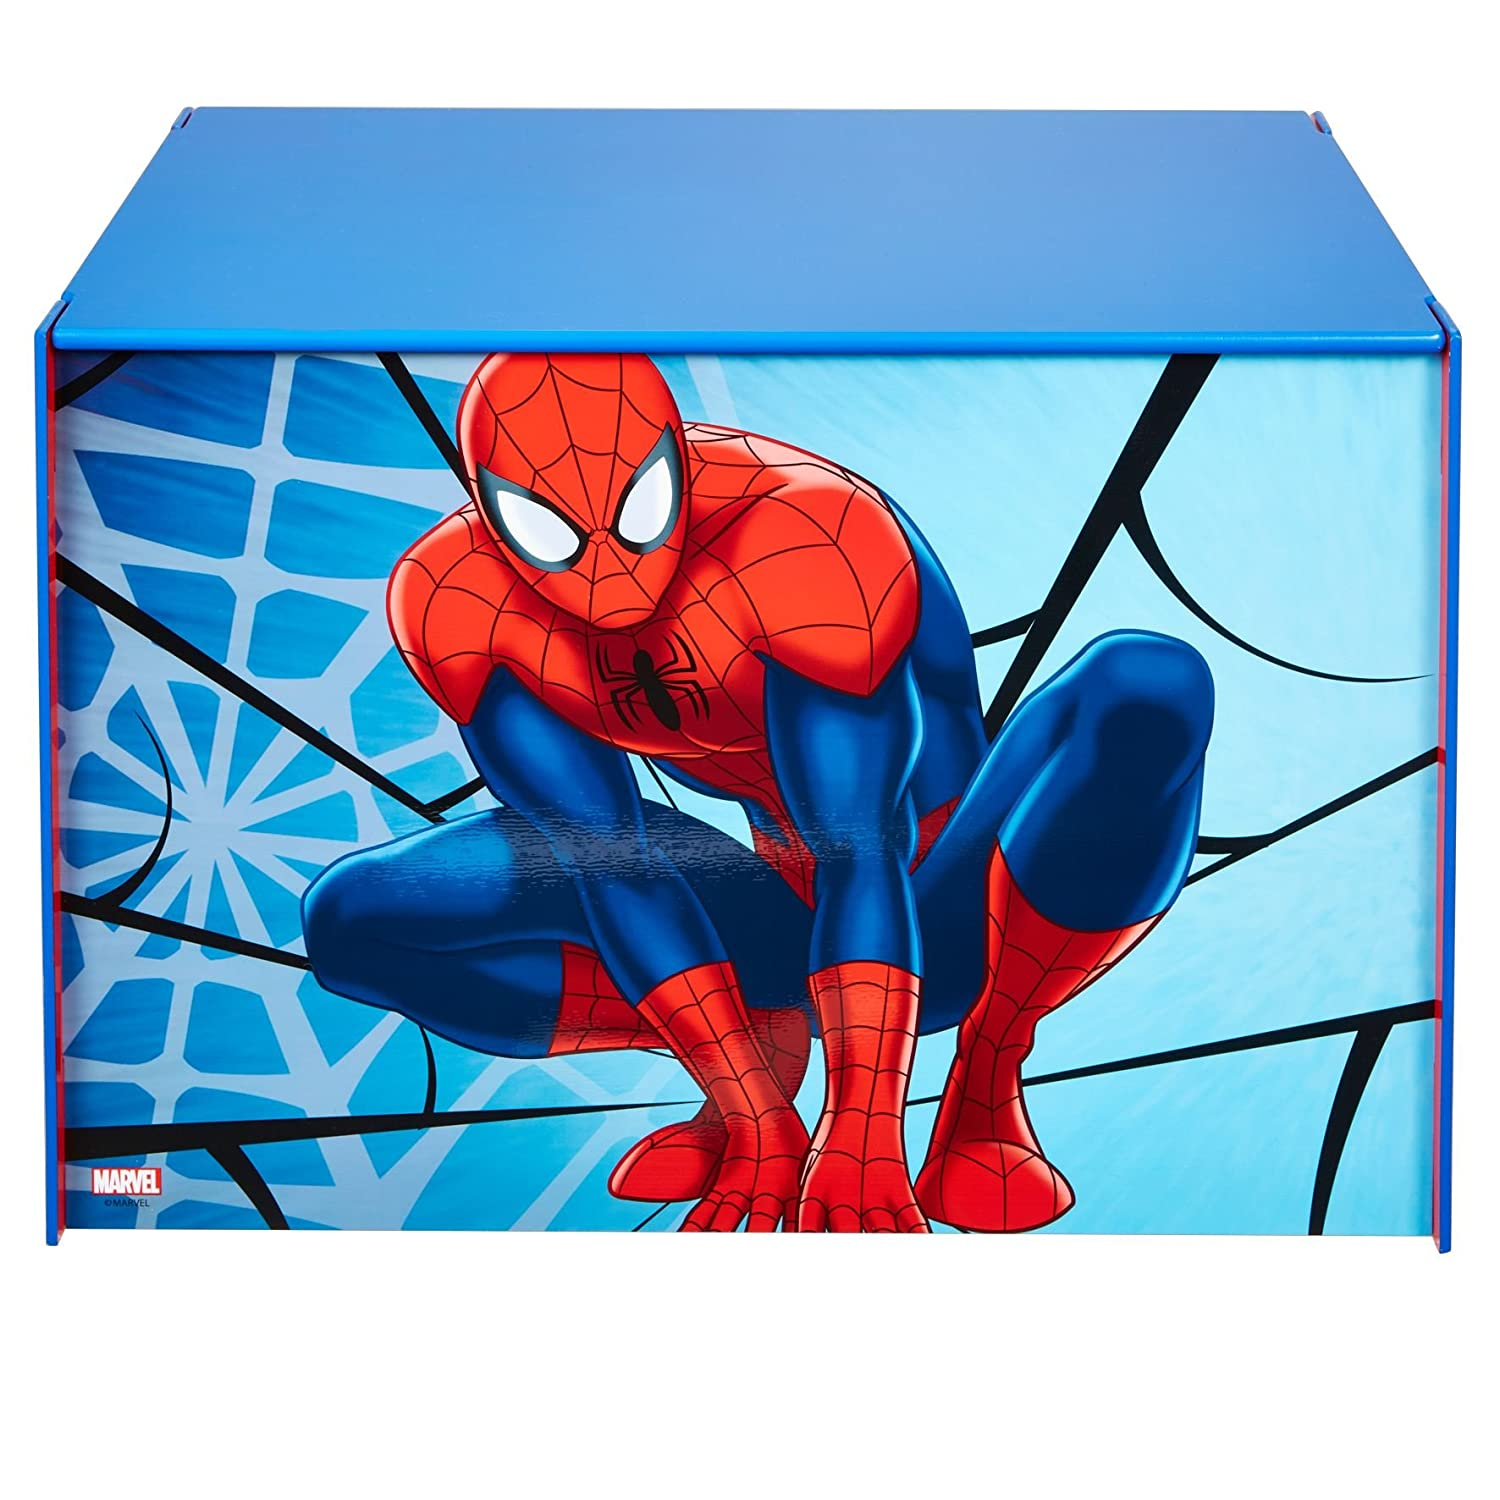 Marvel Spider-Man Kids Toy Box - Childrens Bedroom Storage Chest with Bench Lid by HelloHome Worlds Apart 474SIA